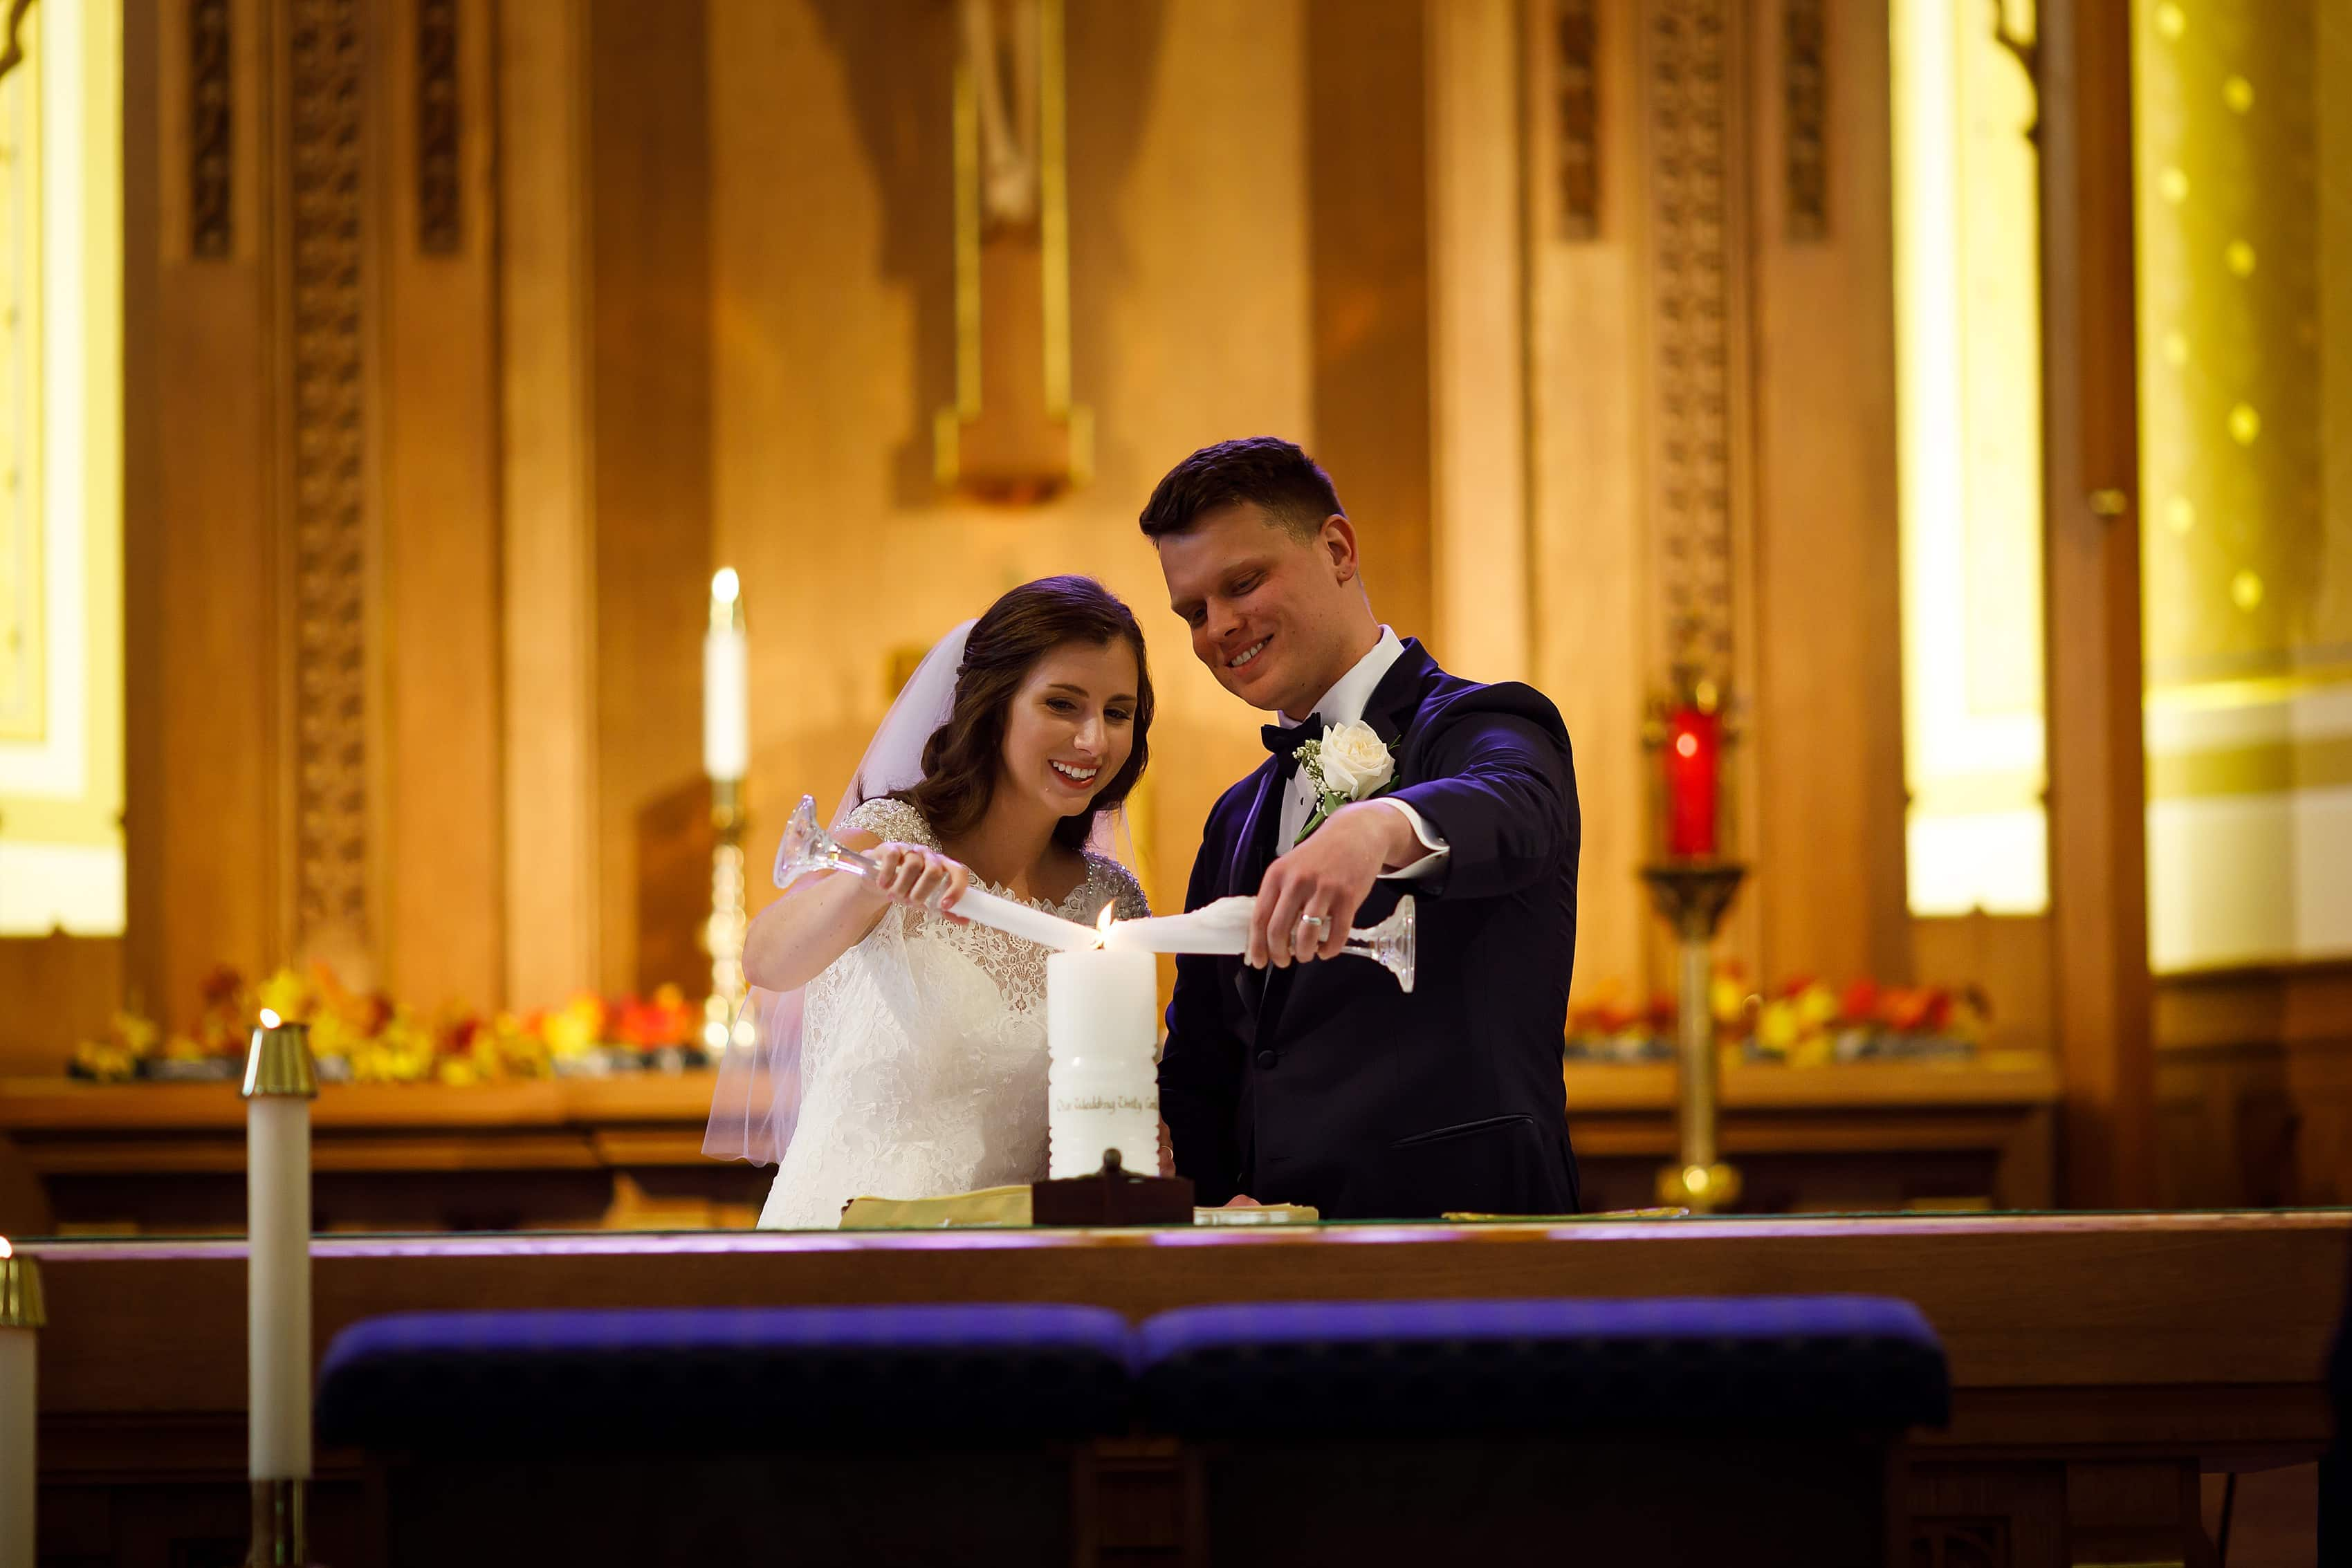 Bride and groom light the unity candle at the alter during wedding ceremony at St. Francis Church in Lake Geneva, Wisconsin